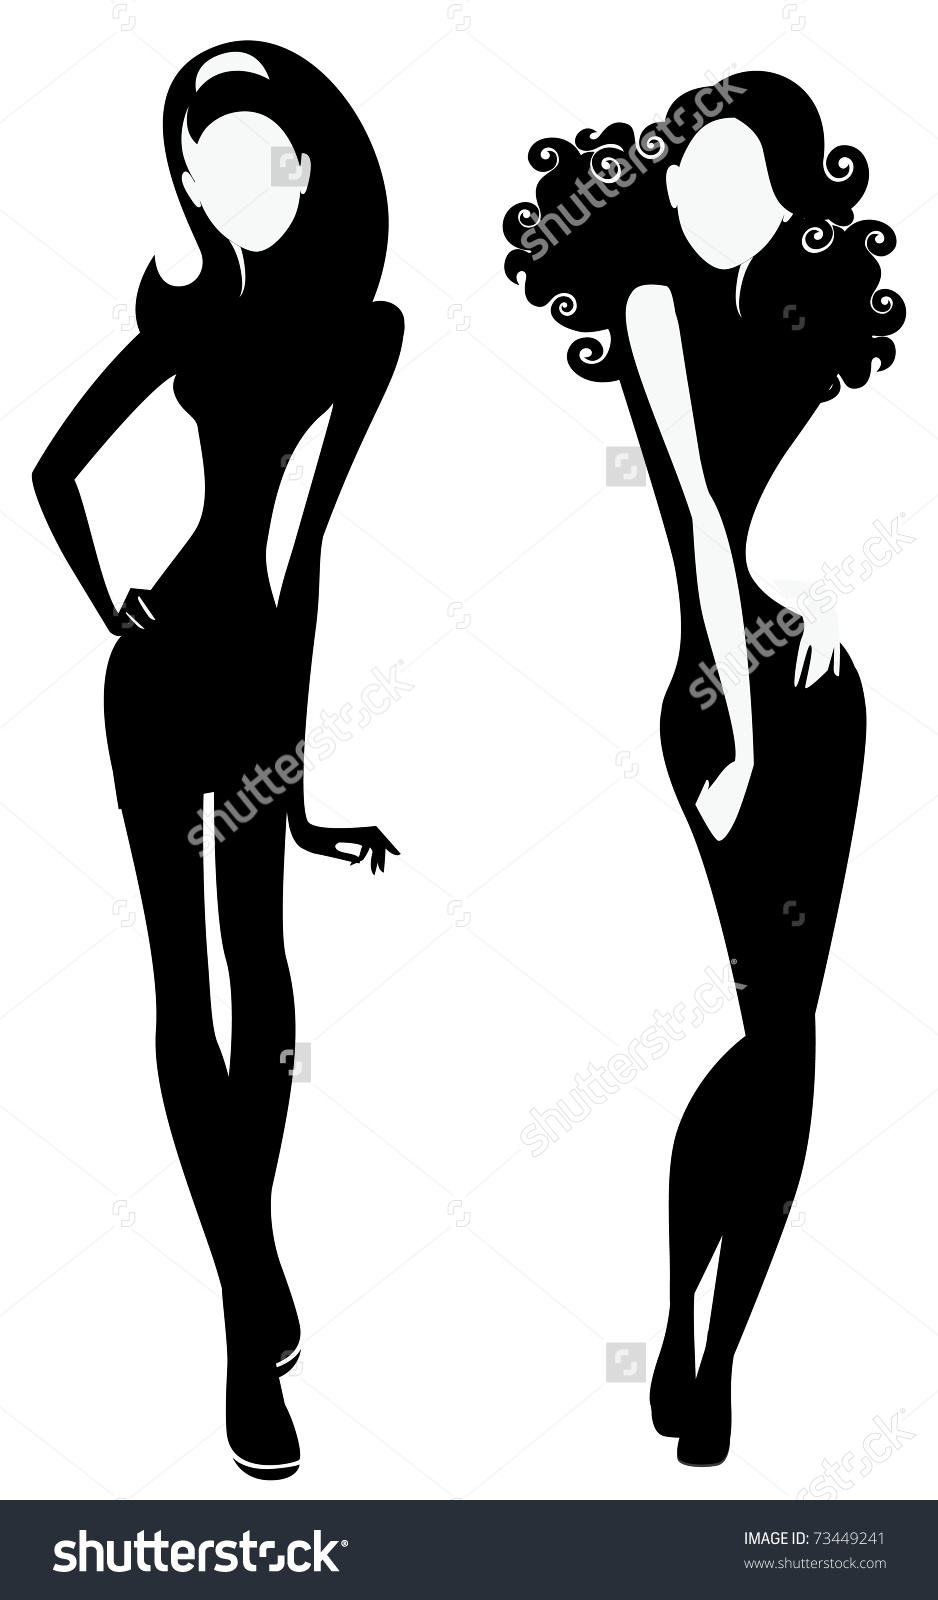 Silhouette Two Fashion Girls Stock Vector 73449241.